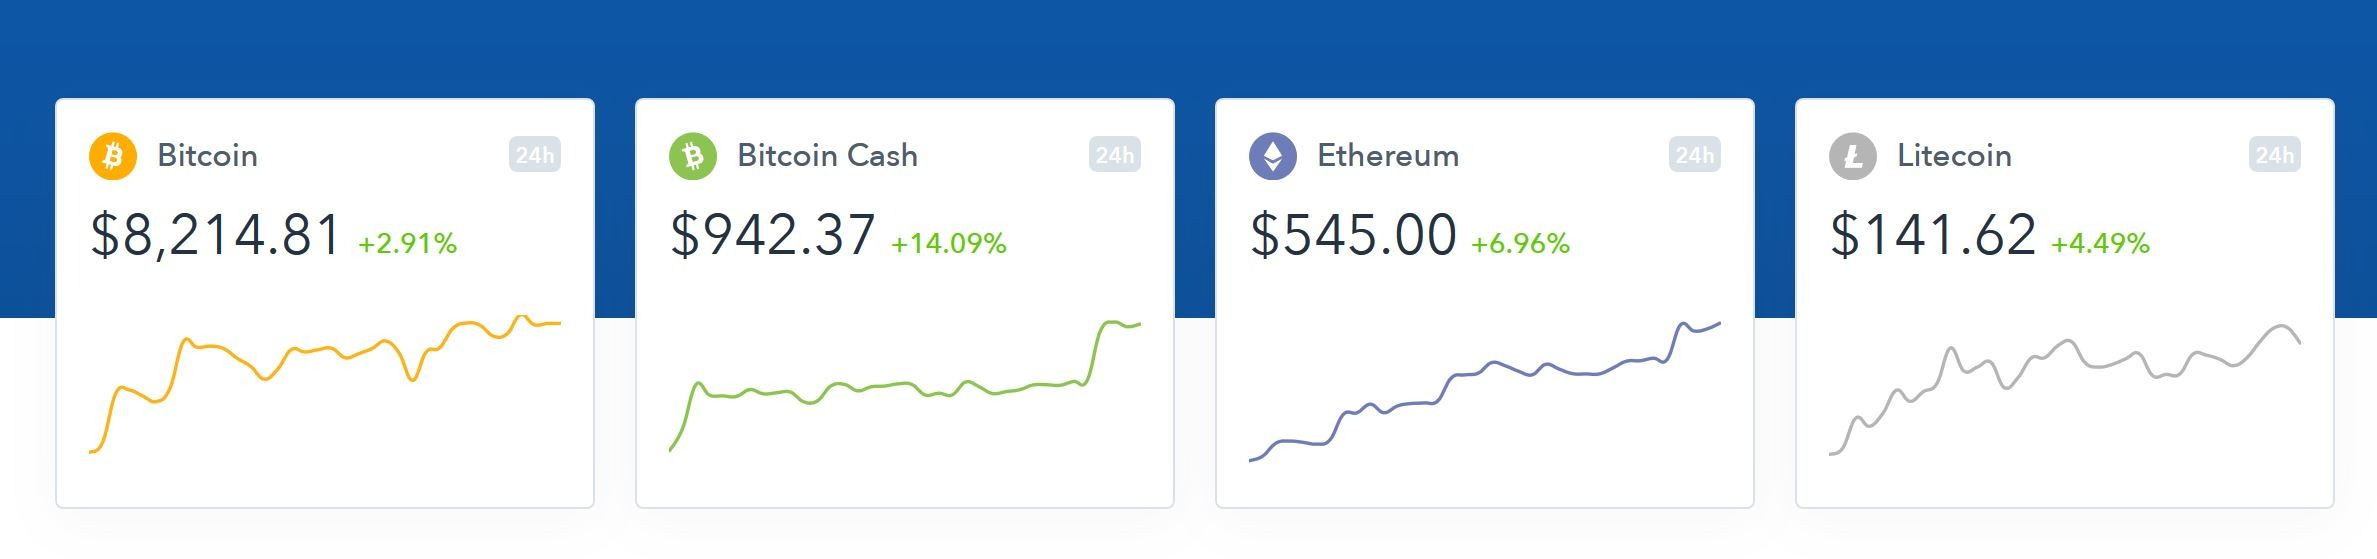 coinbase exchange rates